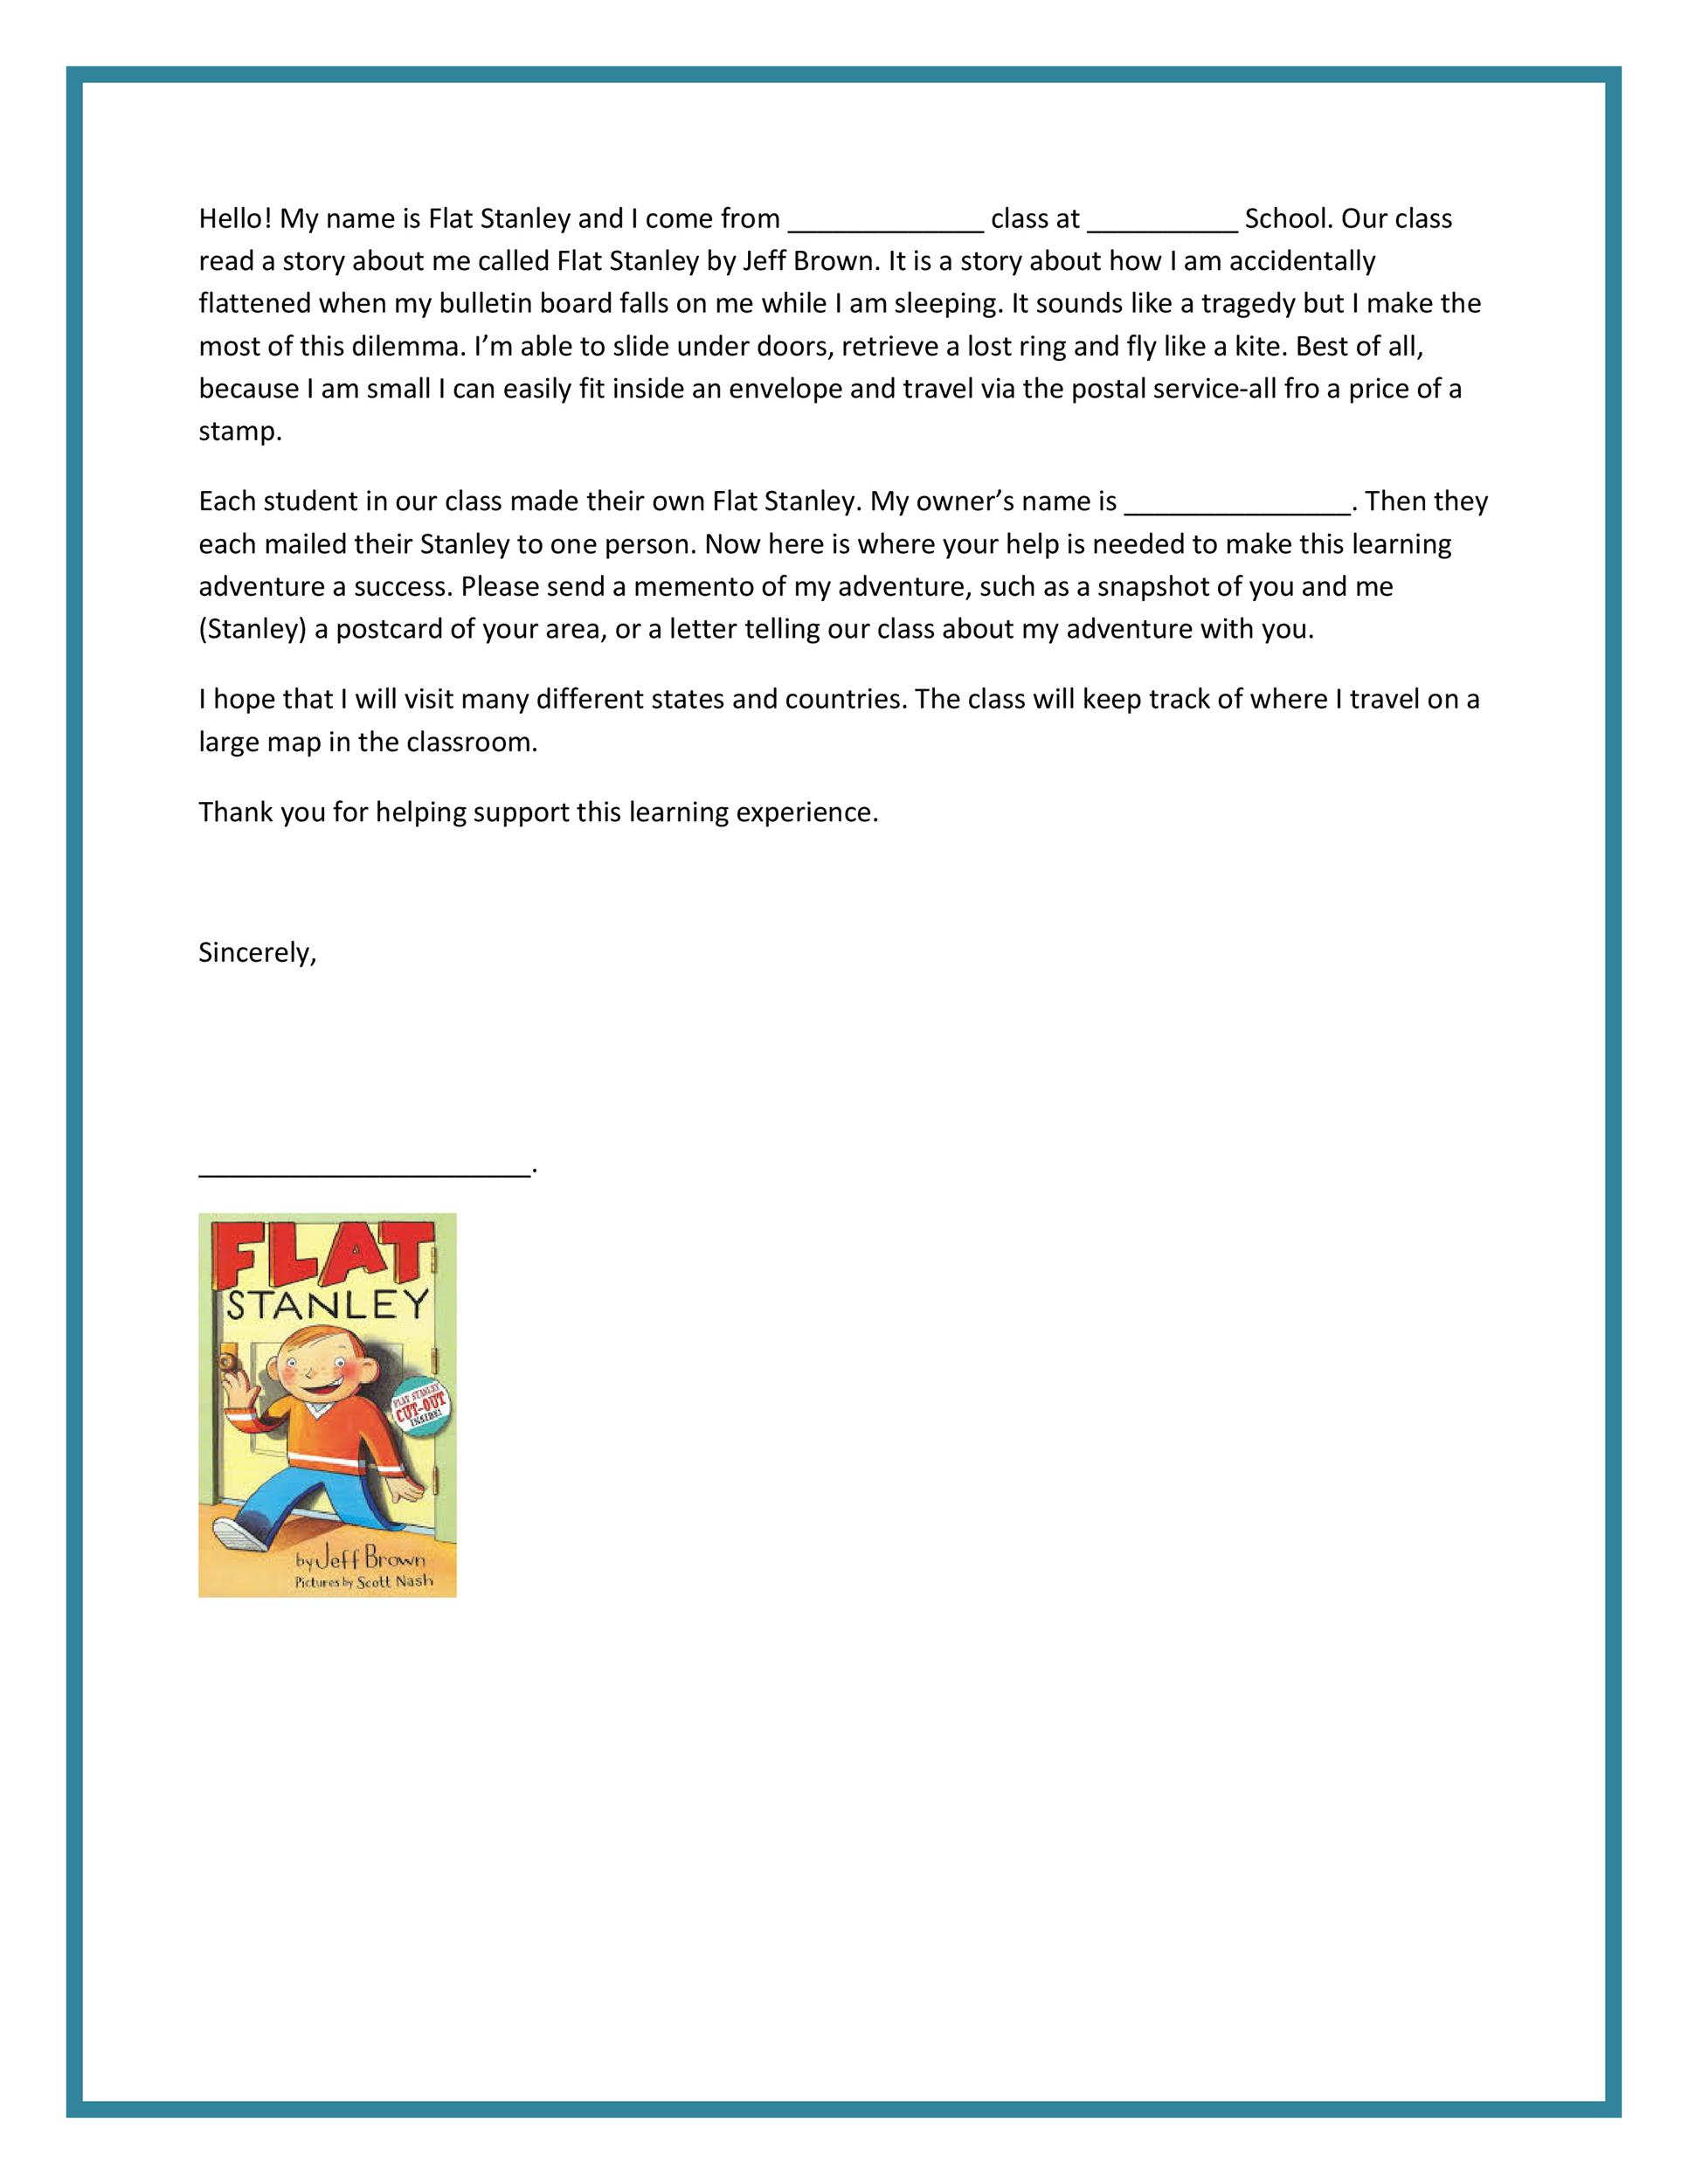 flat stanley letter template - Mersn.proforum.co